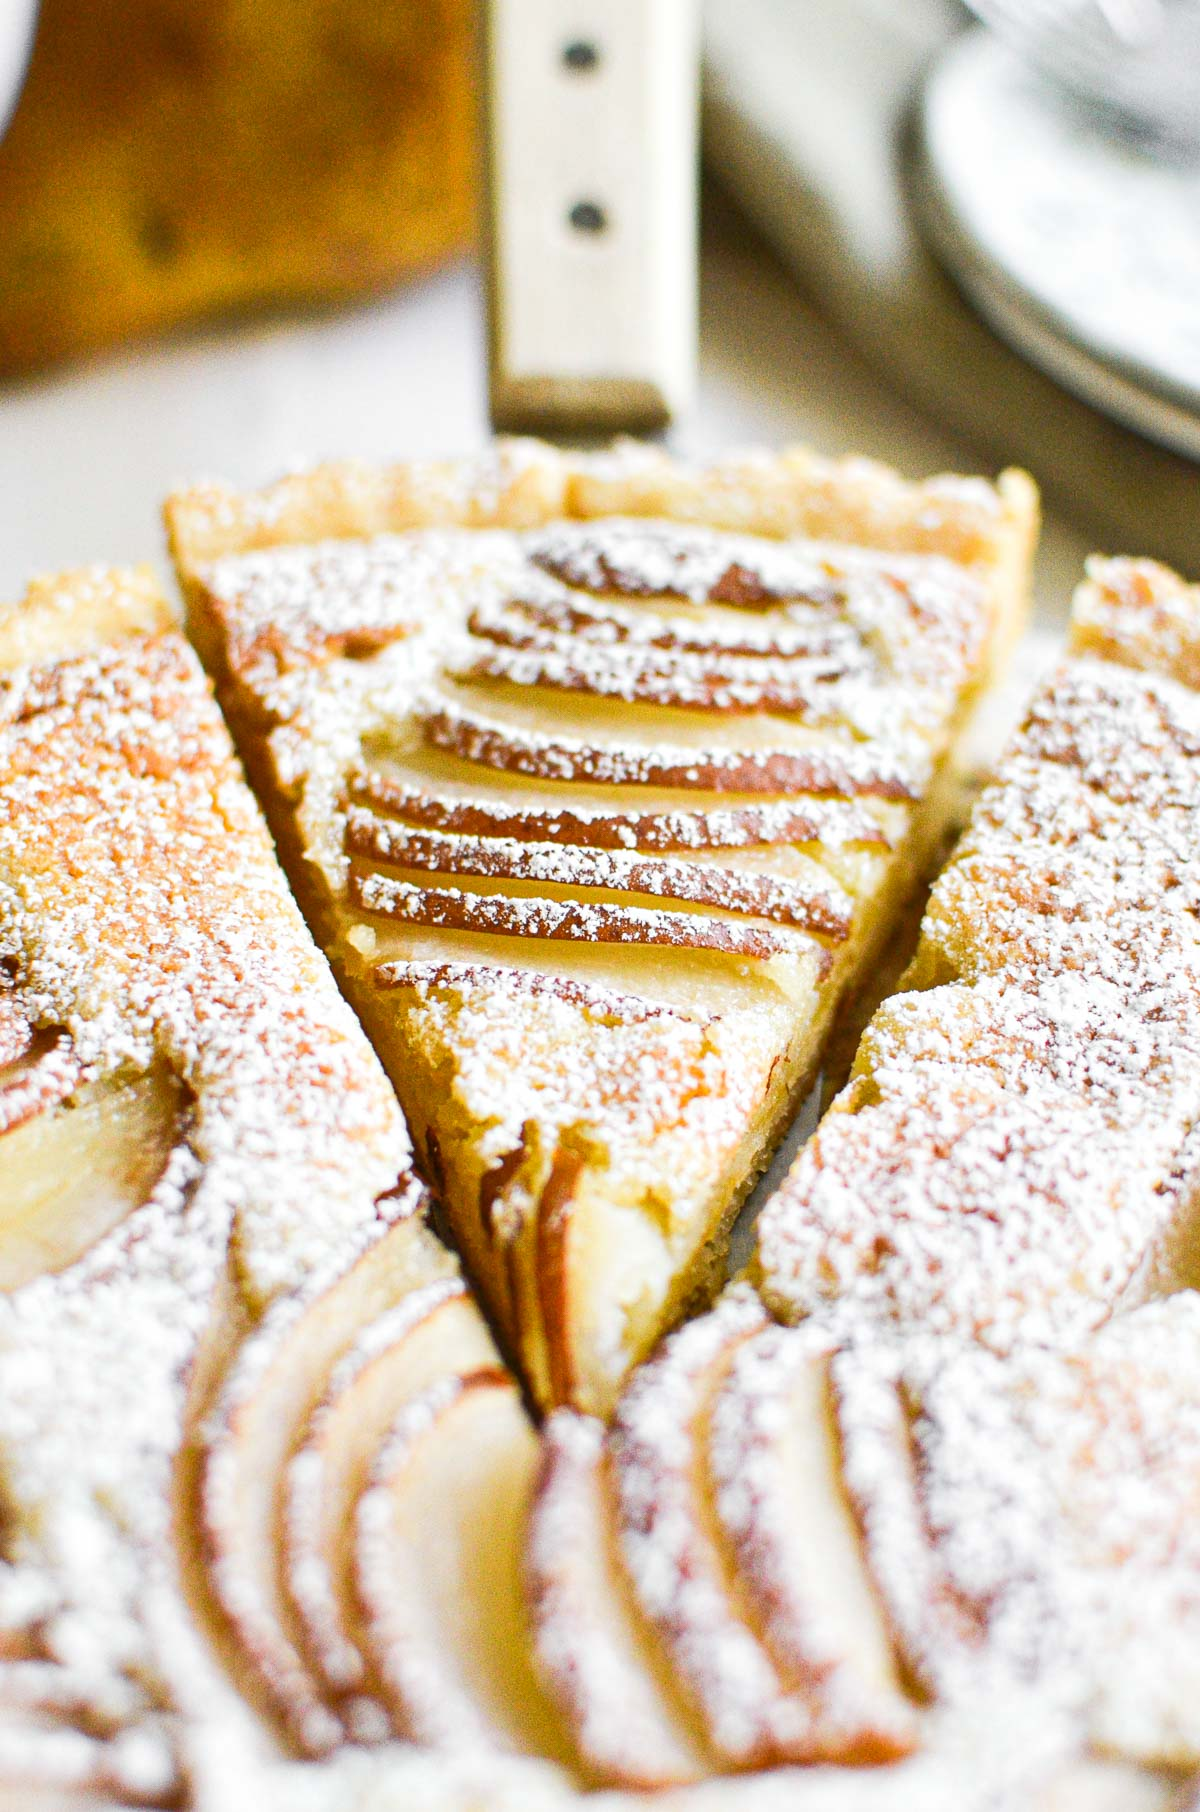 Close up of a slice of pear and almond tart.